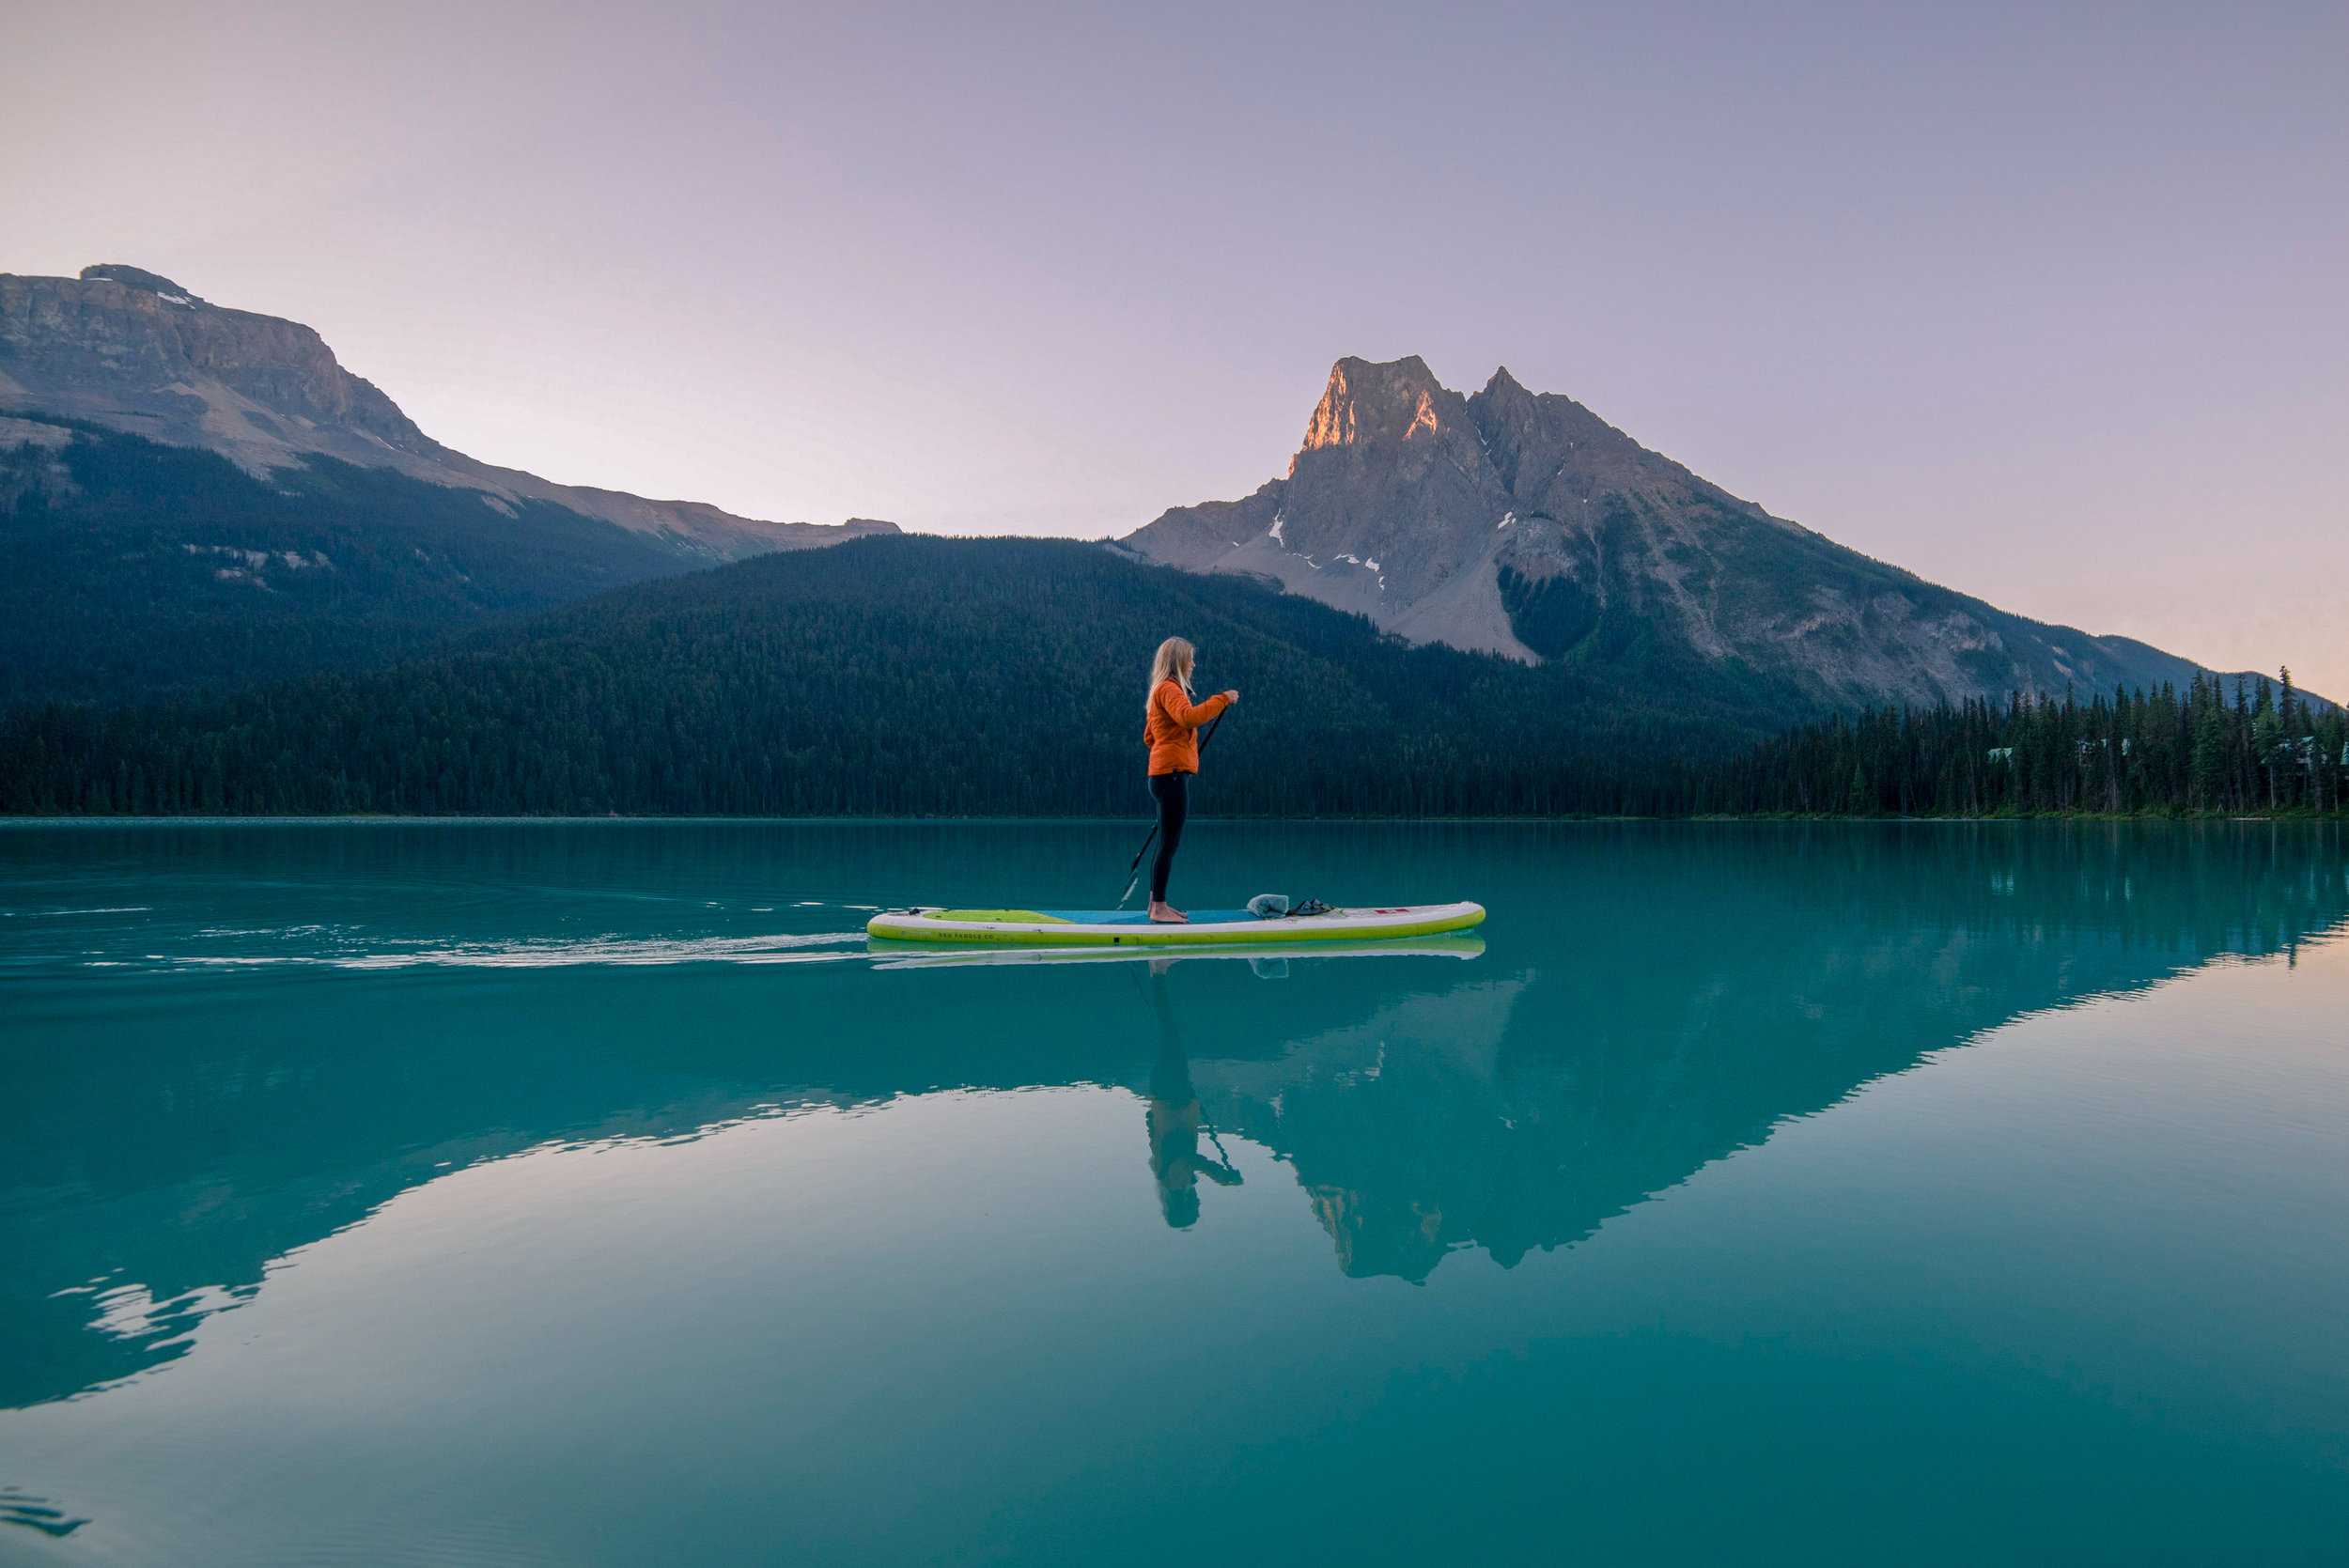 RED PADDLE CO. - CAPTURE INCREDIBLE SUP IMAGERY WITH PHOTOGRAPHER ALLEN MEYERAlso published in SUP International Magazine